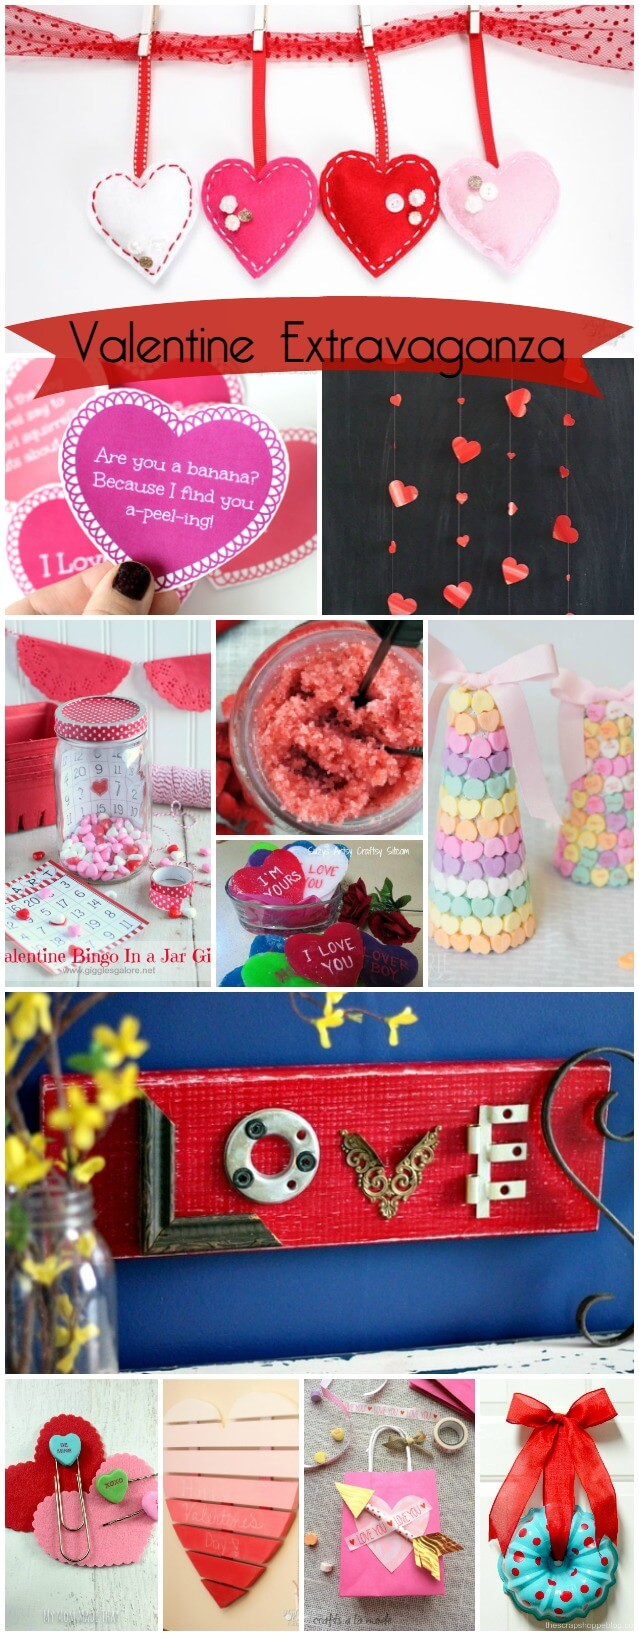 12 Valentine Crafts for you and your family to make. It's a Valentine Extravaganza!